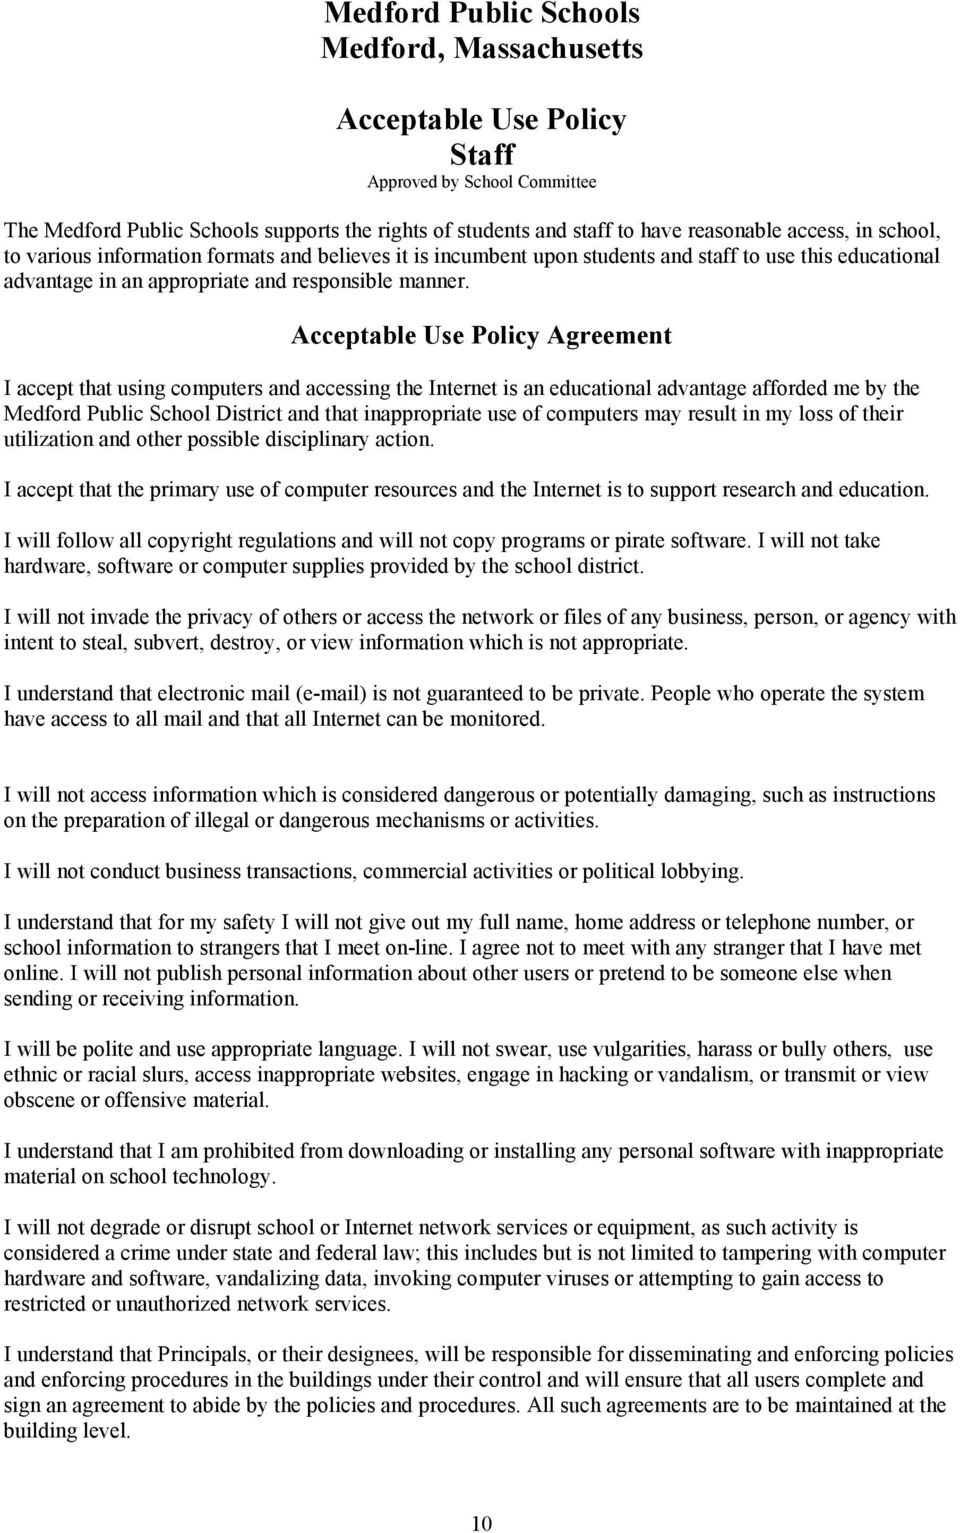 Acceptable Use Policy Agreement I accept that using computers and accessing the Internet is an educational advantage afforded me by the Medford Public School District and that inappropriate use of